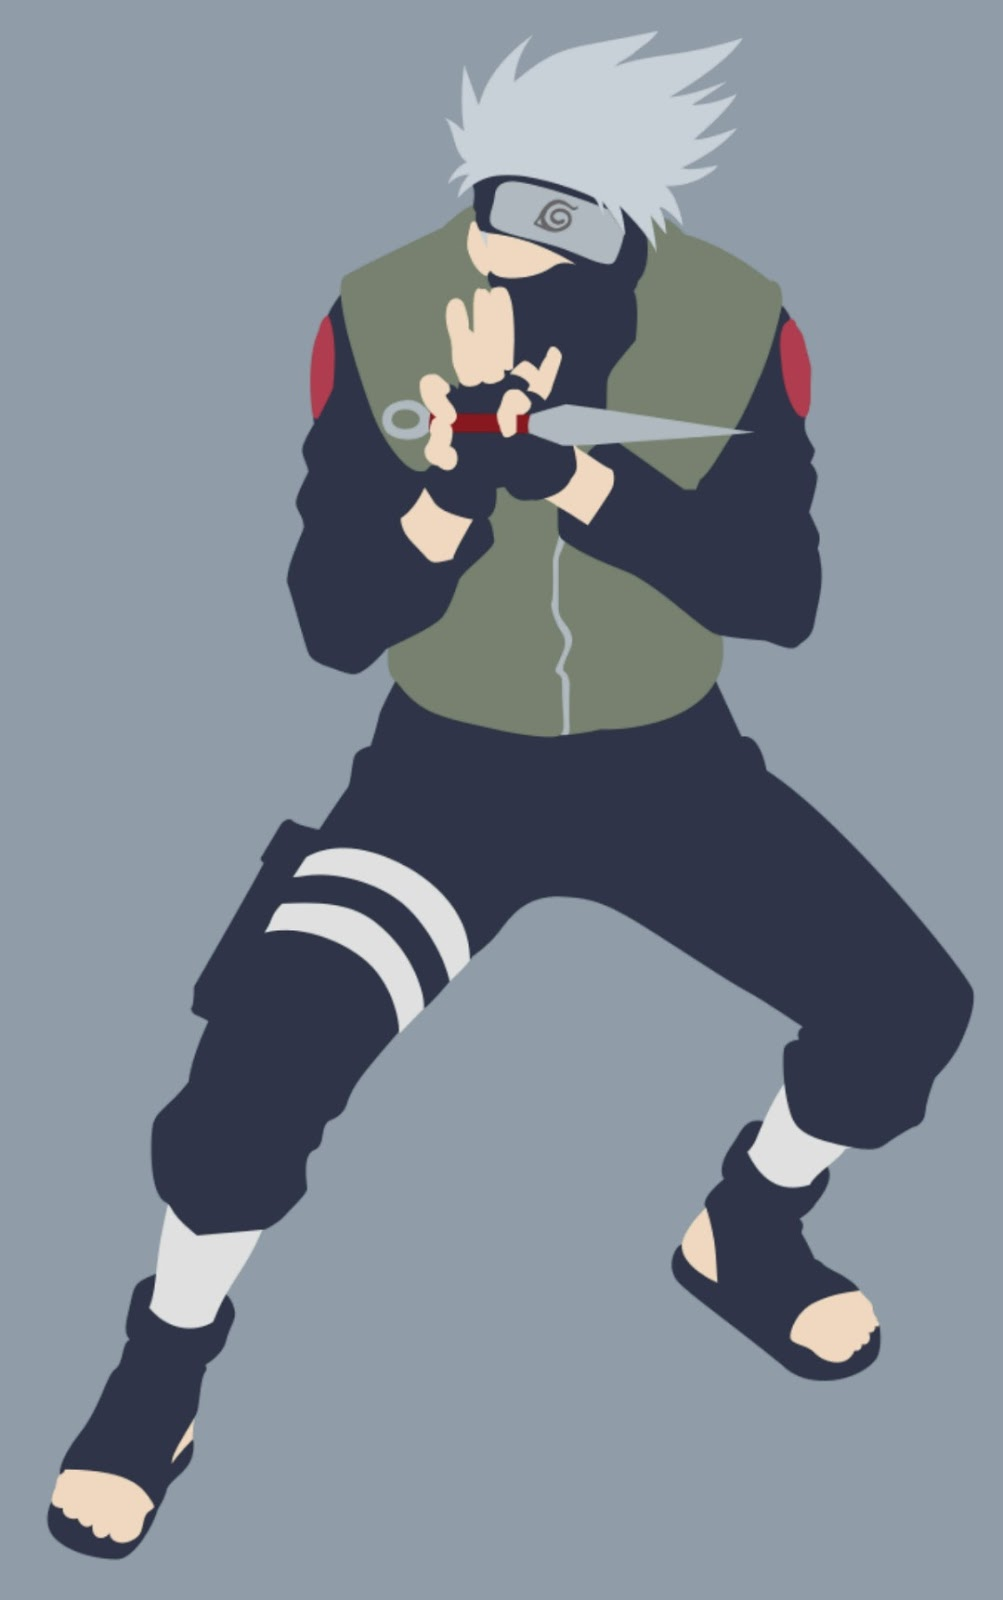 1 Download Wallpaper hatake kakashi vector untuk Android dan Whatsapp